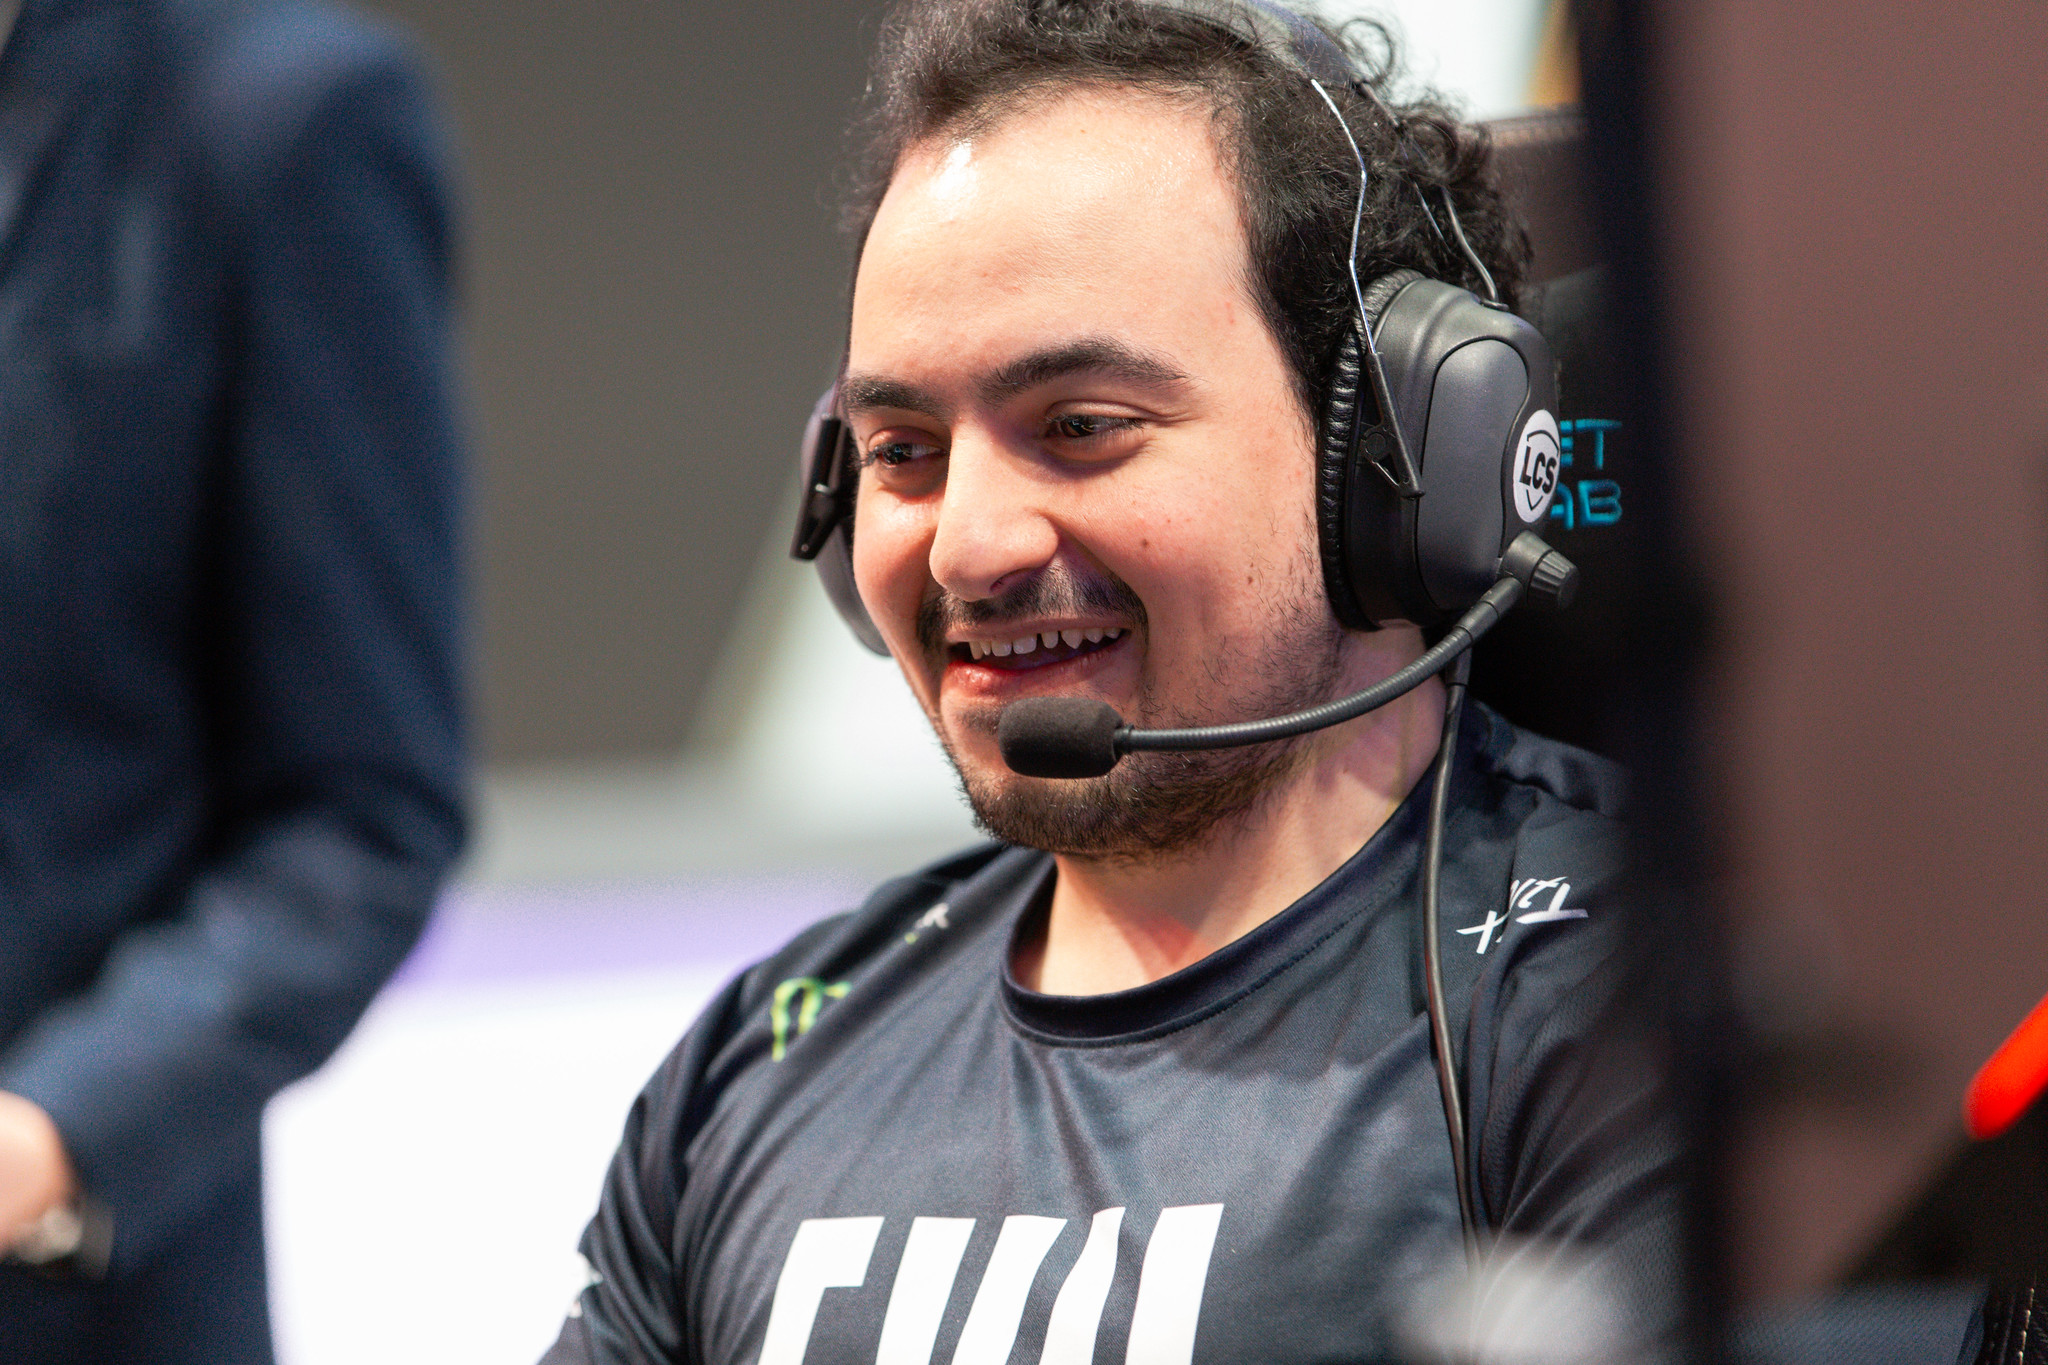 Evil Geniuses squash a resurgent CLG during week 7 of the 2020 LCS Spring Split